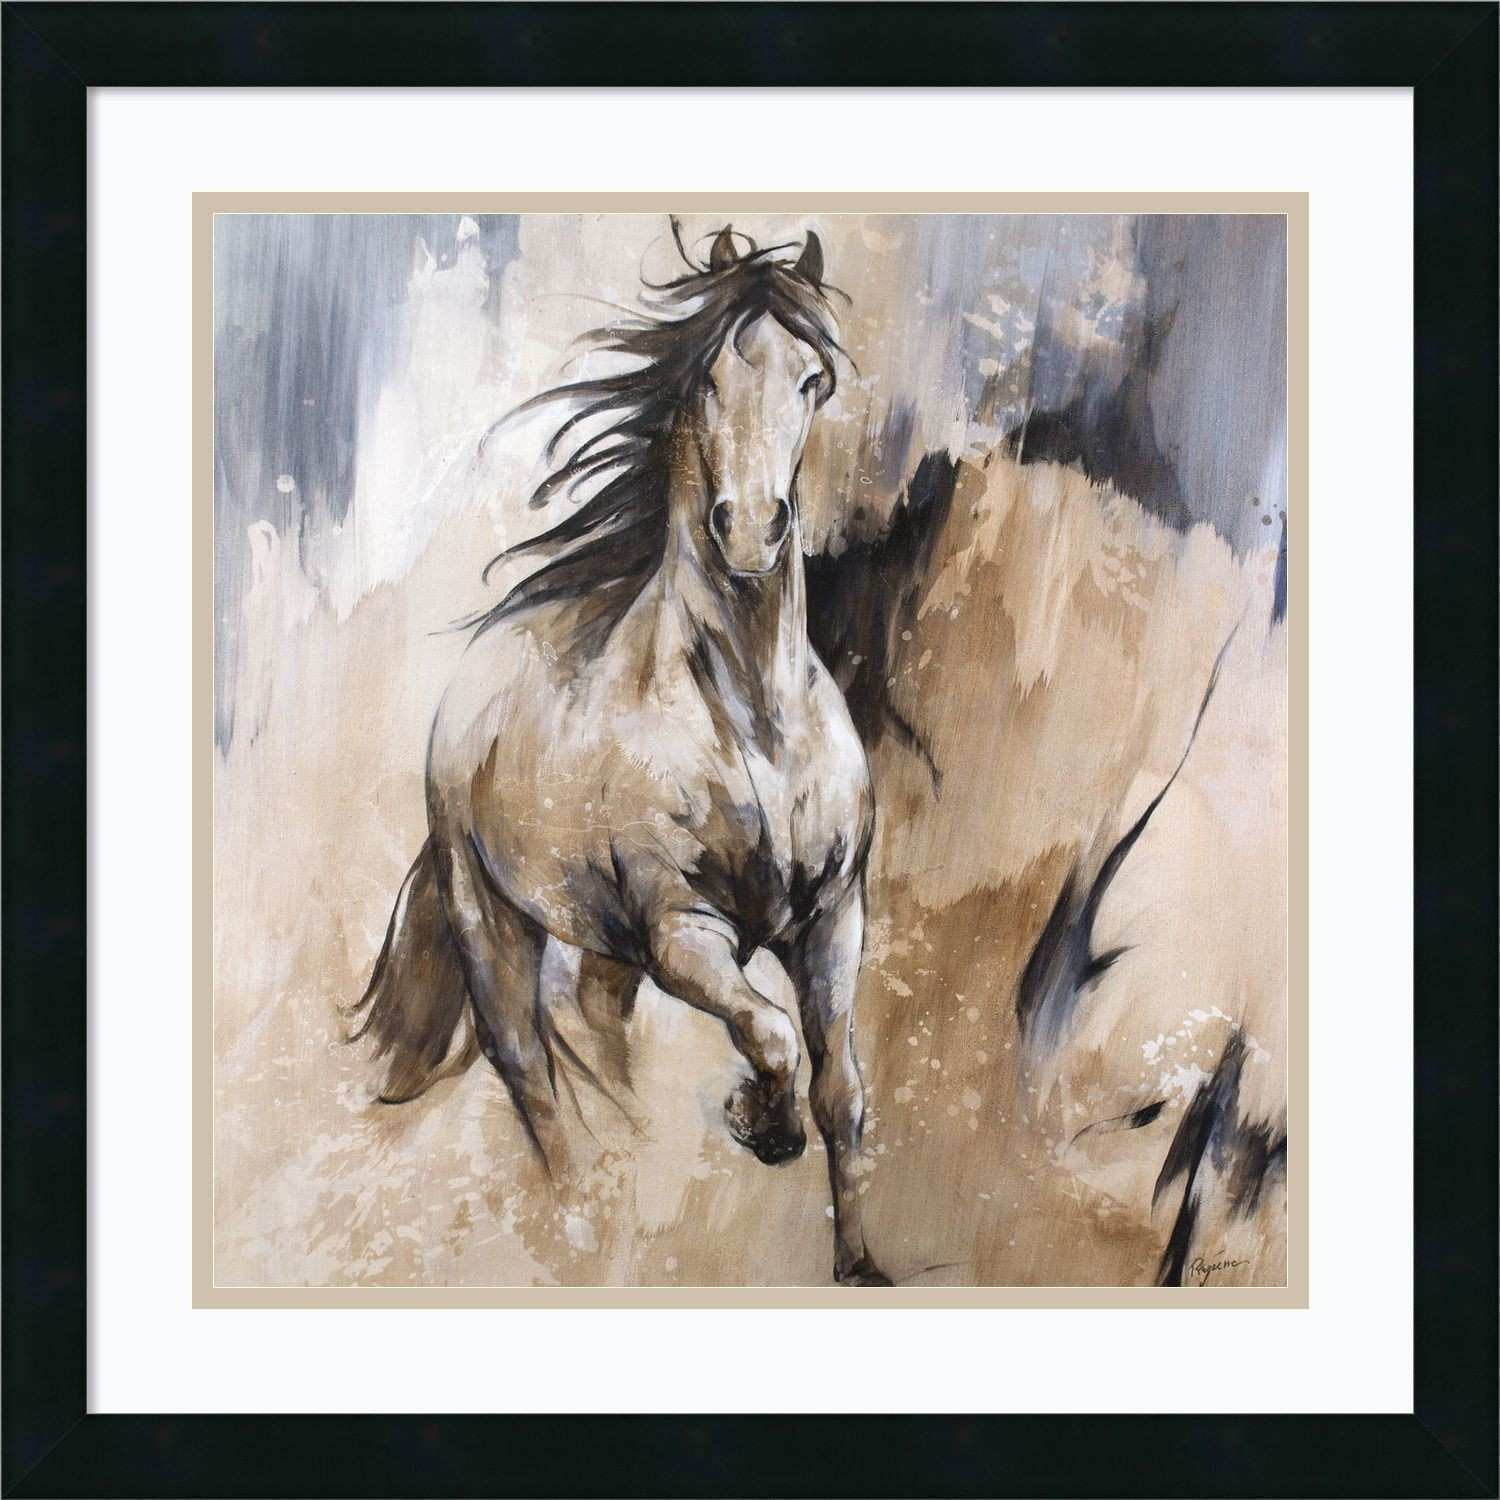 Framed Art Print Frison Horse by Cyril Reguerre 22 x 22 inch